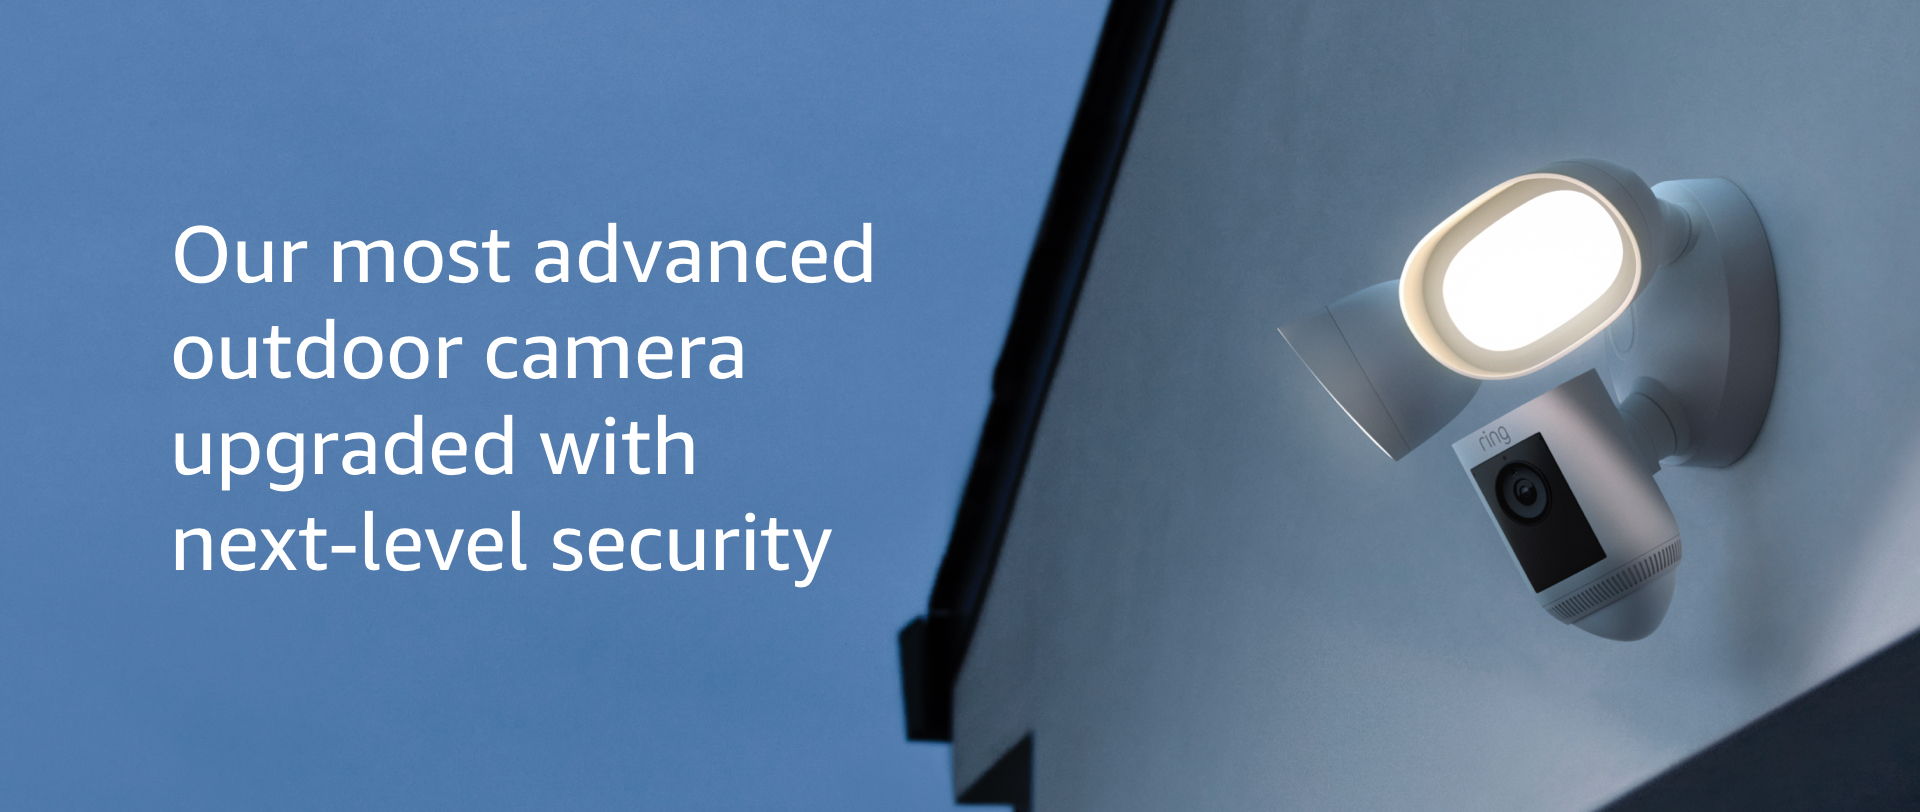 Our most advance outdoor camera